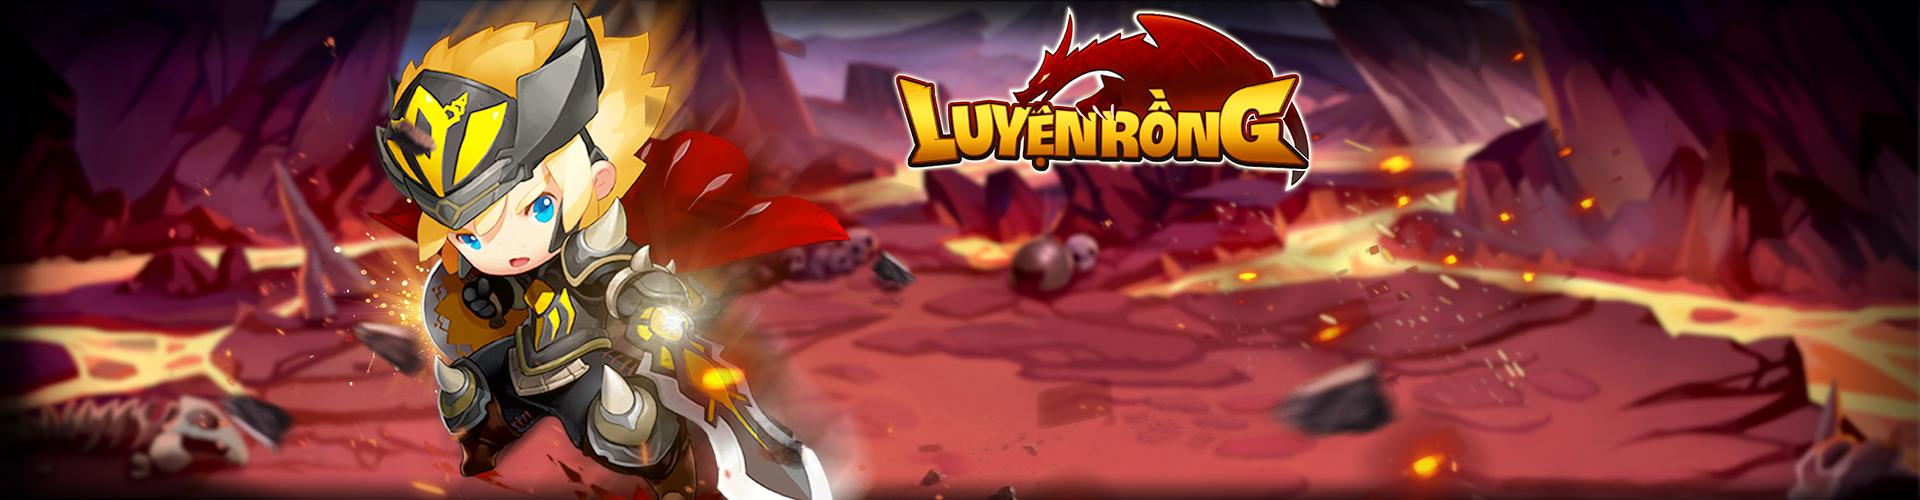 Game Luyện RỒng